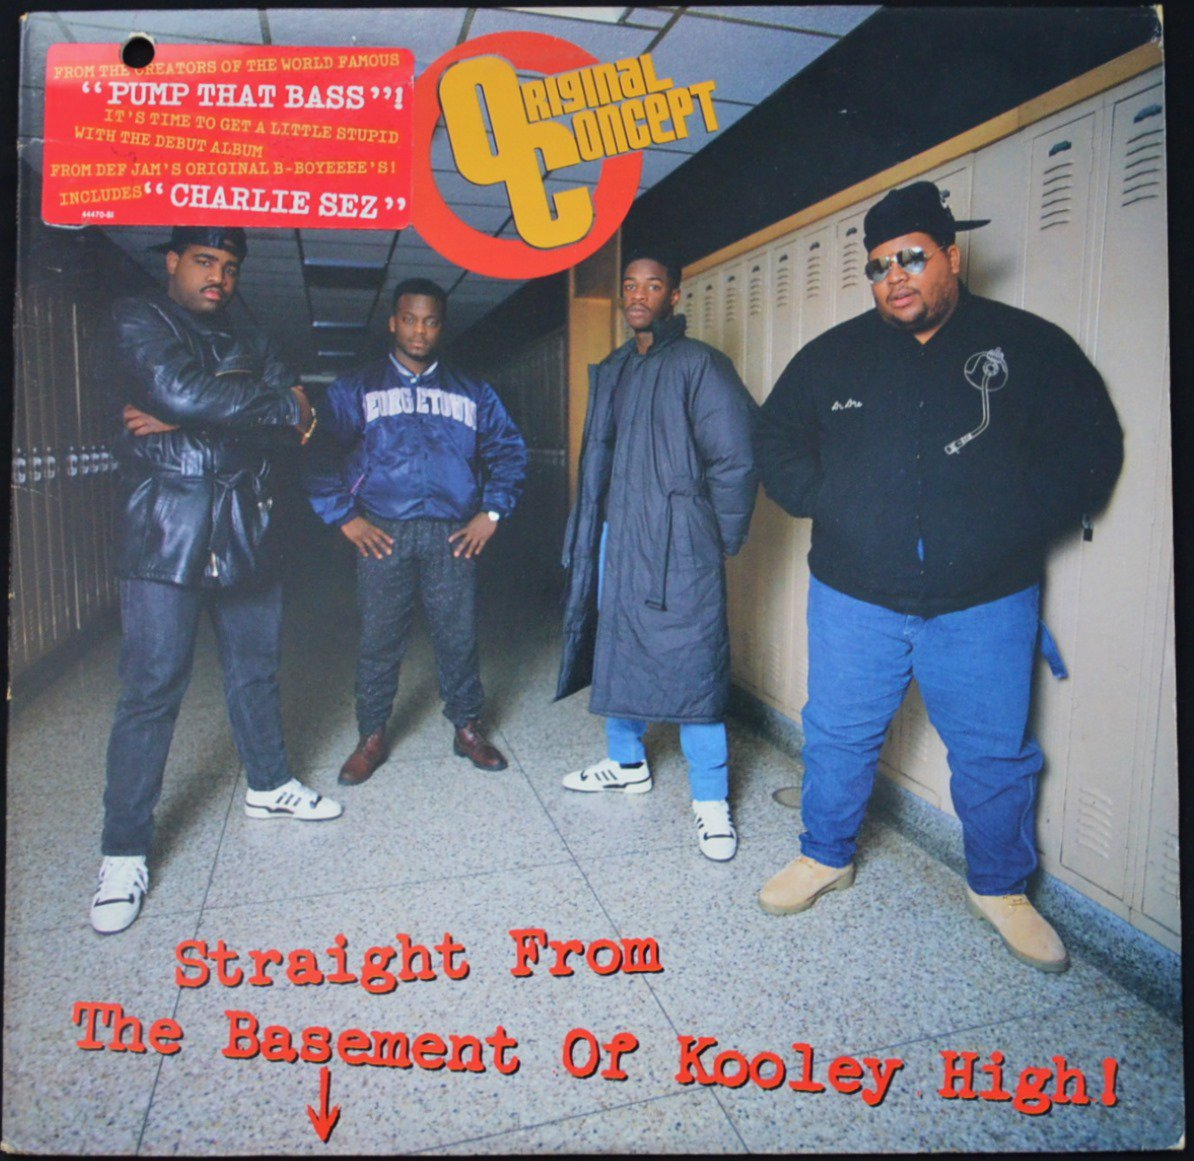 ORIGINAL CONCEPT / STRAIGHT FROM THE BASEMENT OF KOOLEY HIGH! (1LP)